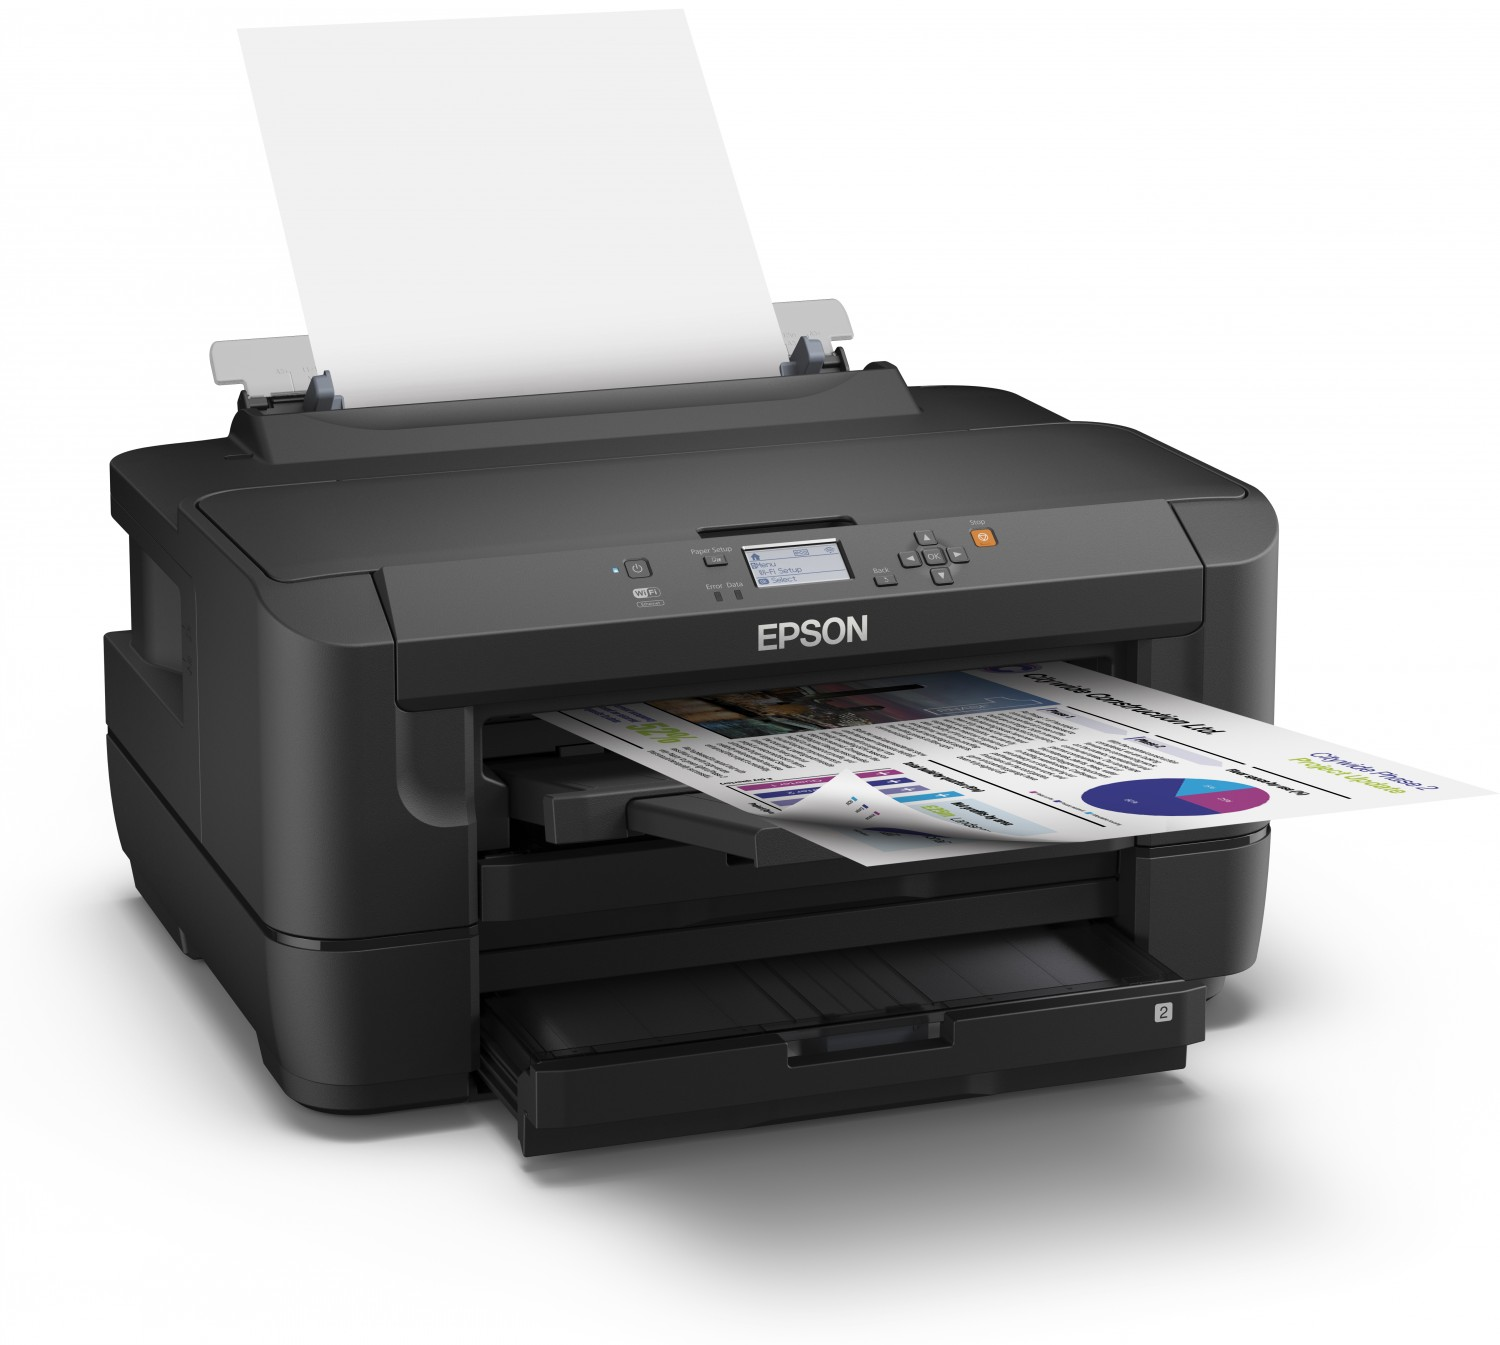 Epson WorkForce A3 WF-7710 DWF Wireless Printer